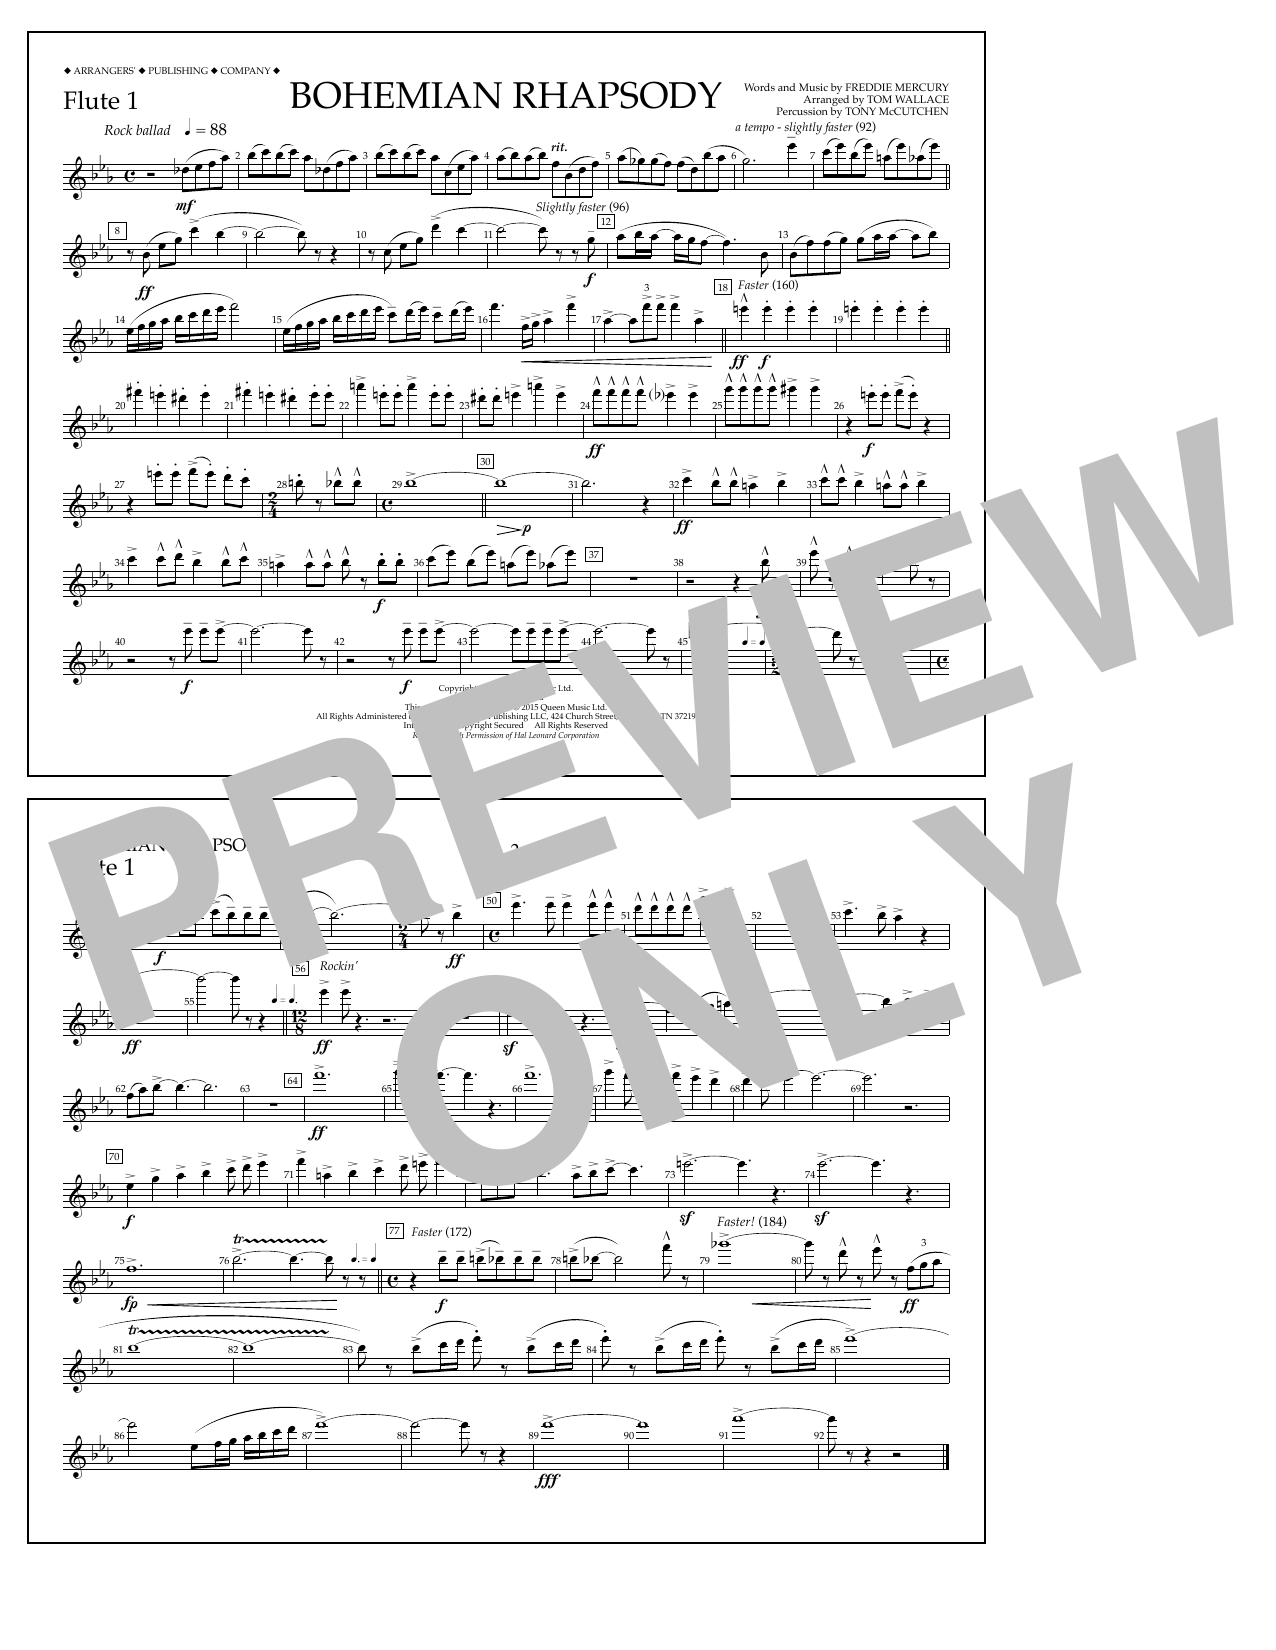 Tom Wallace Bohemian Rhapsody - Flute 1 sheet music notes and chords. Download Printable PDF.